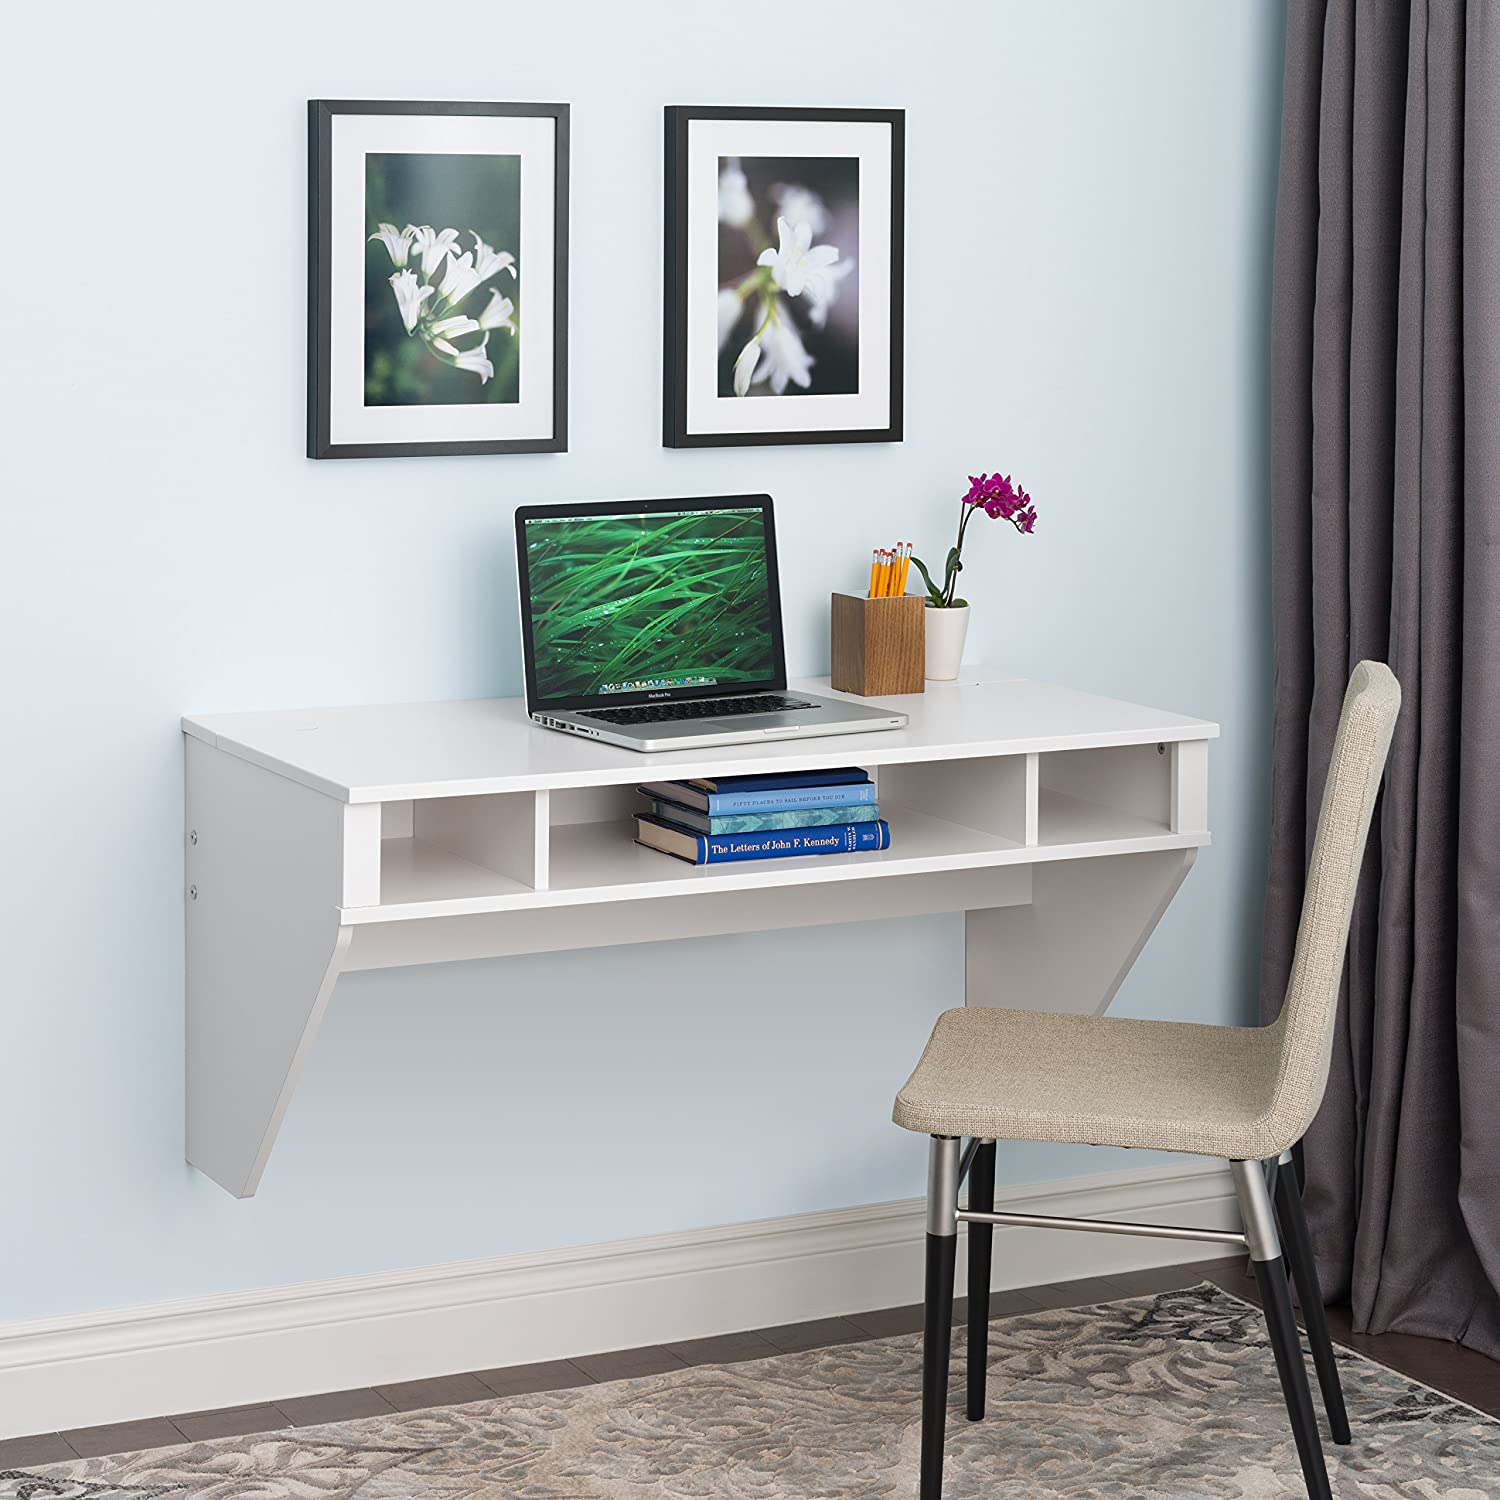 wall mounted office desk. Amazon.com: Prepac Wall Mounted Designer Floating Desk In White: Kitchen \u0026  Dining Wall Mounted Office Desk A